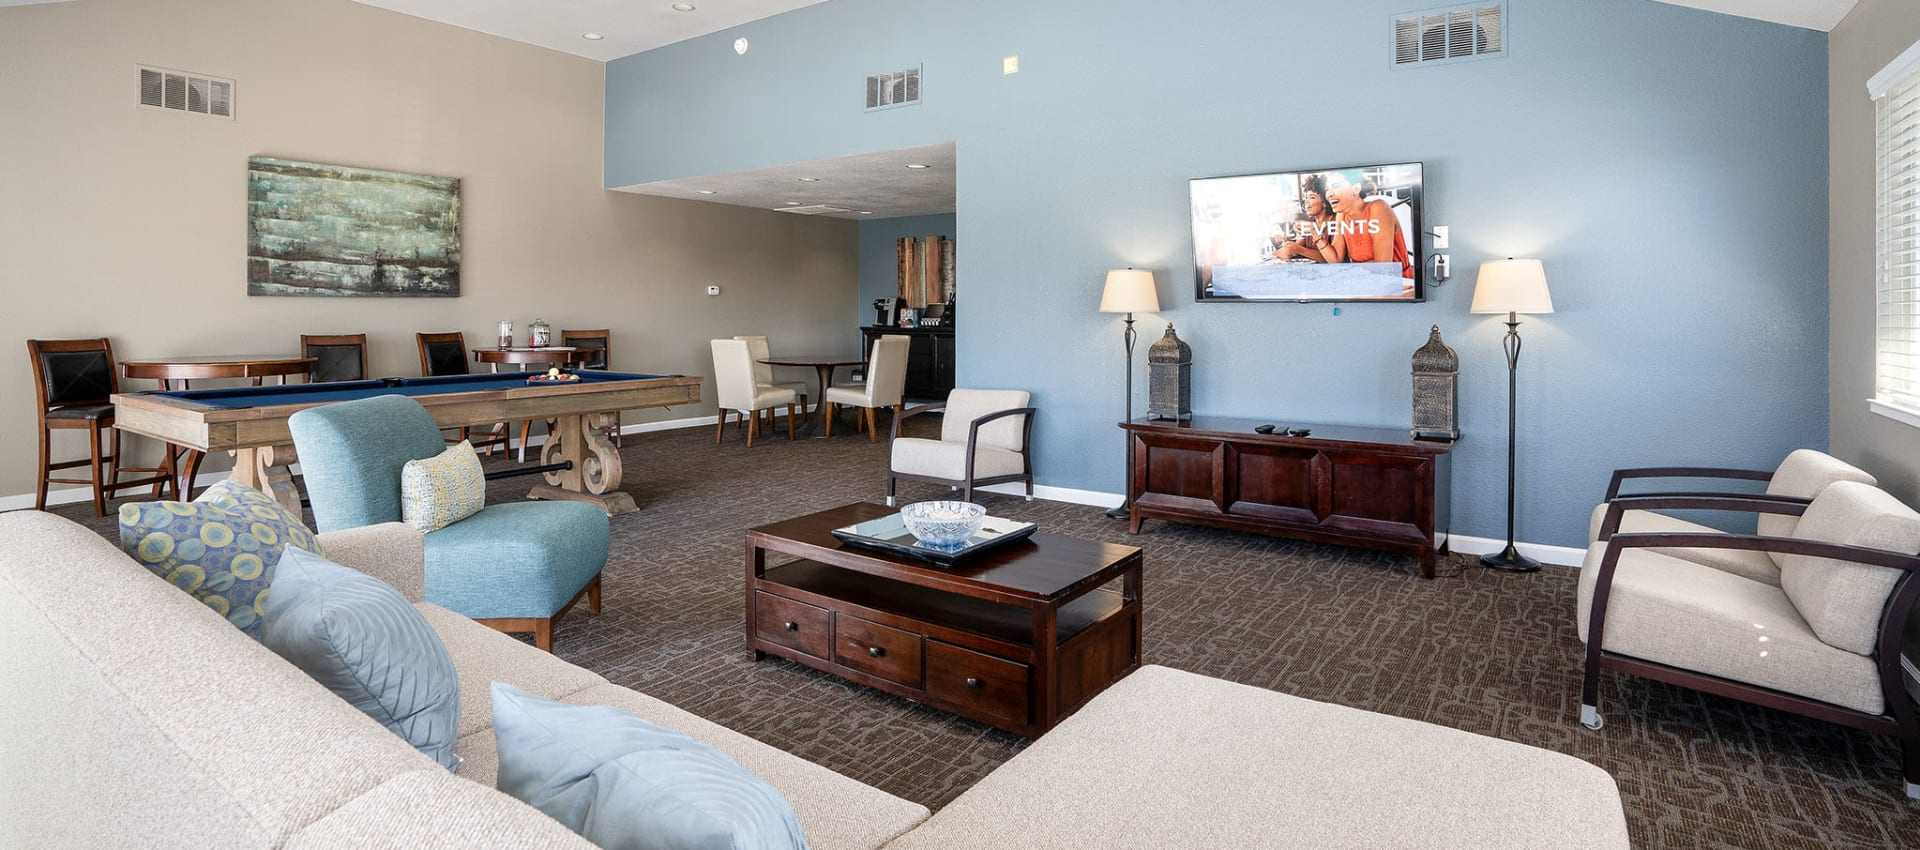 Community clubhouse at Ridgecrest Apartment Homes in Martinez, California